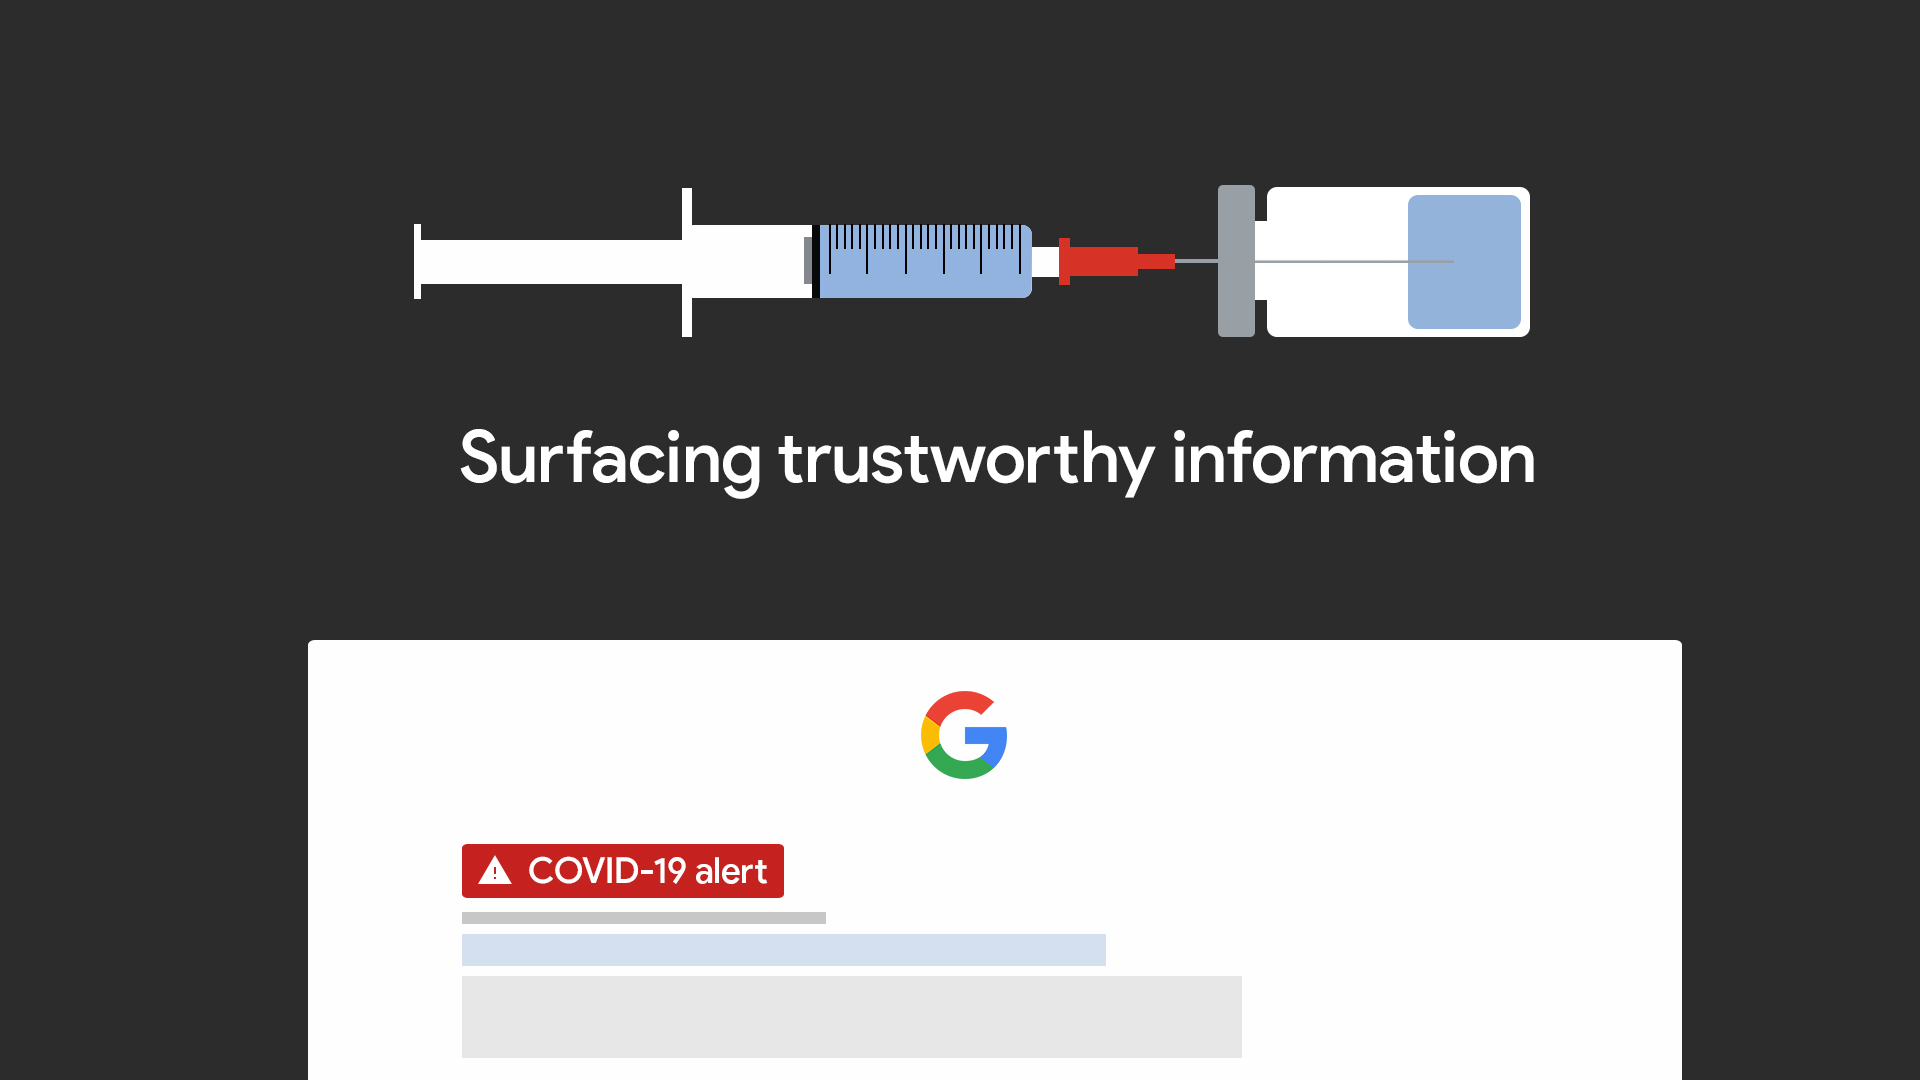 Google Search will surface trustworthy vaccine information using fact-checking research